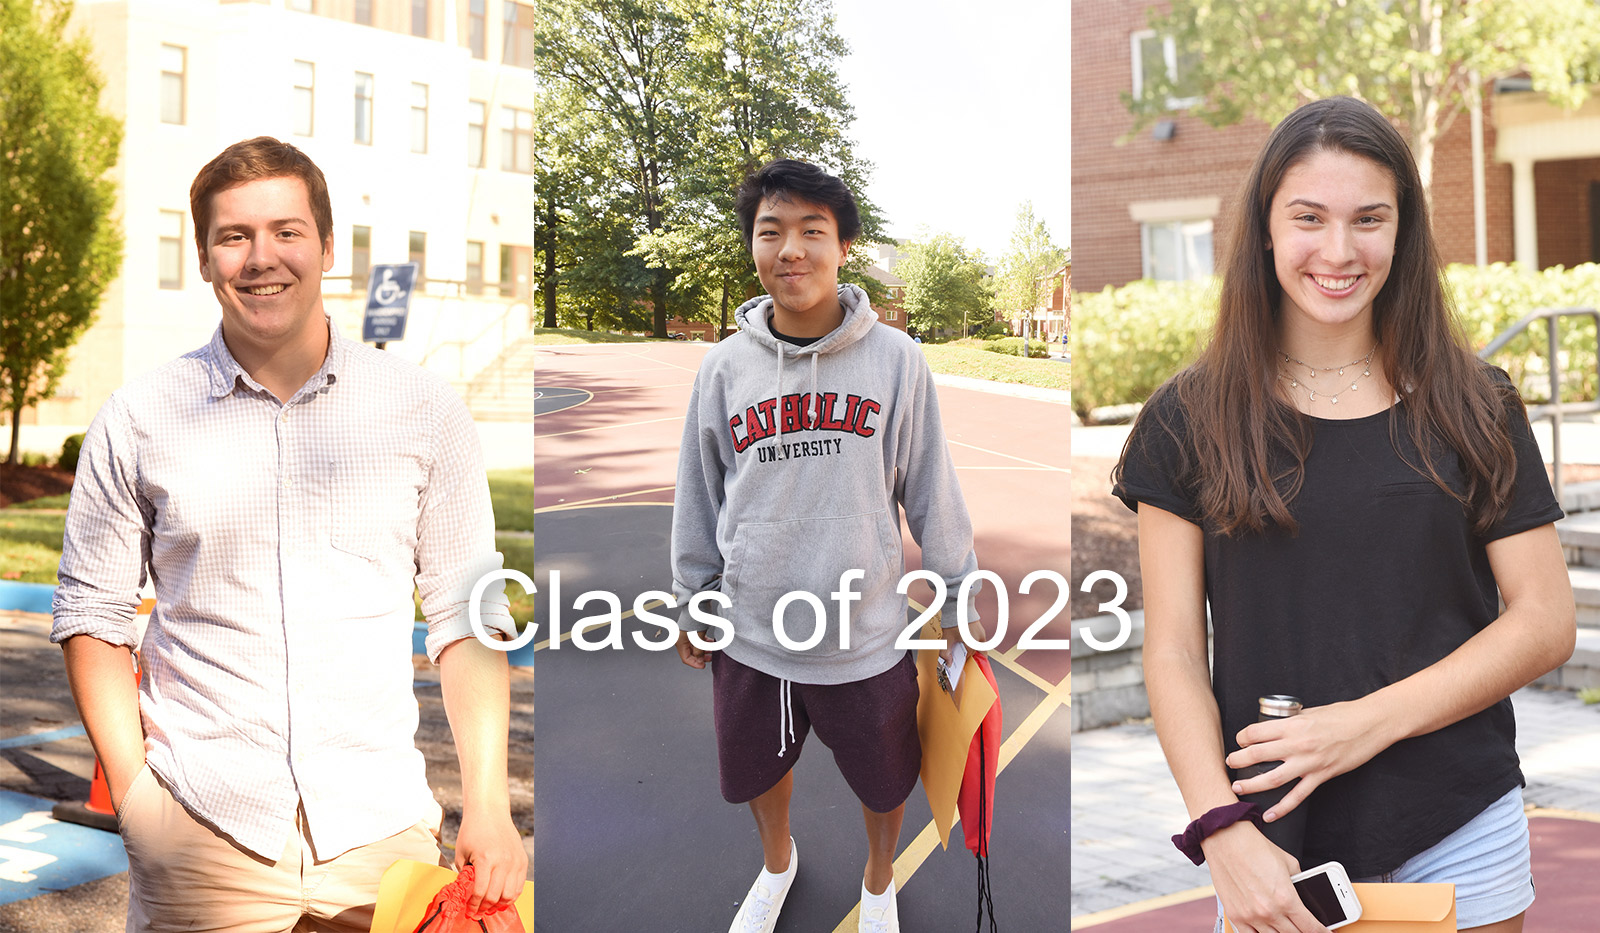 Three student profile photos from the class of 2023.